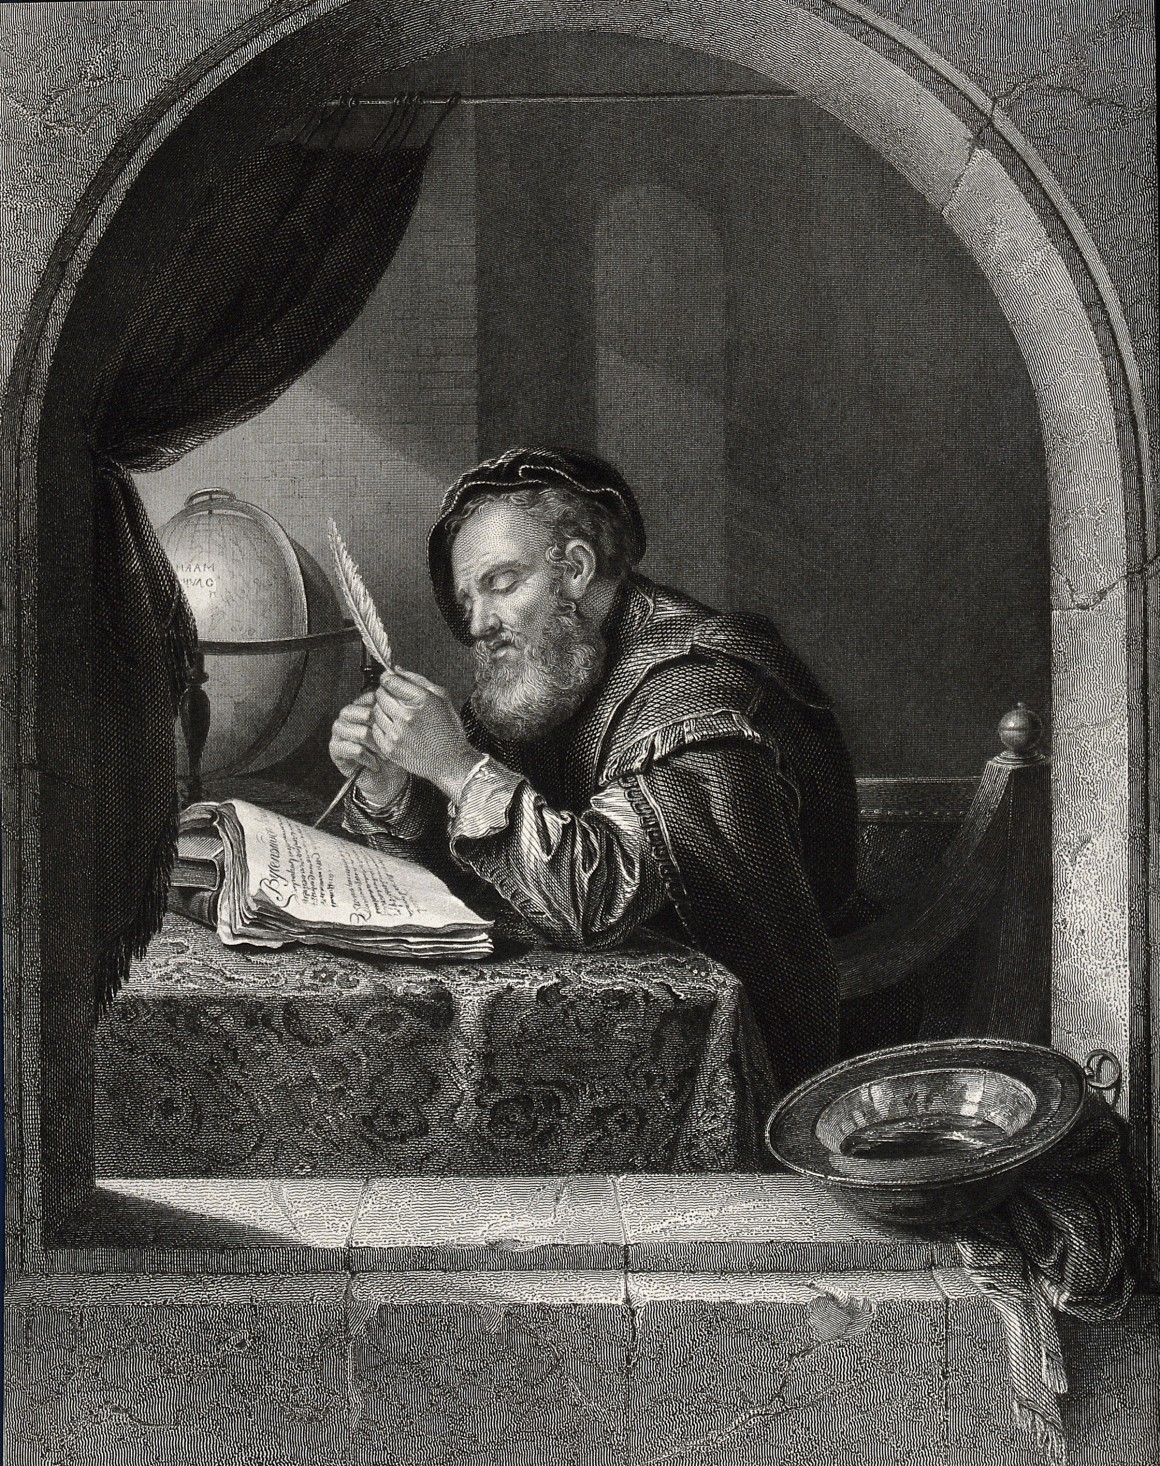 V0024853 A seated man sharpening a quill pen. Engraving by C. Guttenb Credit: Wellcome Library, London. Wellcome Images images@wellcome.ac.uk http://wellcomeimages.org A seated man sharpening a quill pen. Engraving by C. Guttenberg after F. van Mieris. By: Frans van Mierisafter: Carl Gottlieb GuttenbergPublished:  -   Copyrighted work available under Creative Commons Attribution only licence CC BY 4.0 http://creativecommons.org/licenses/by/4.0/